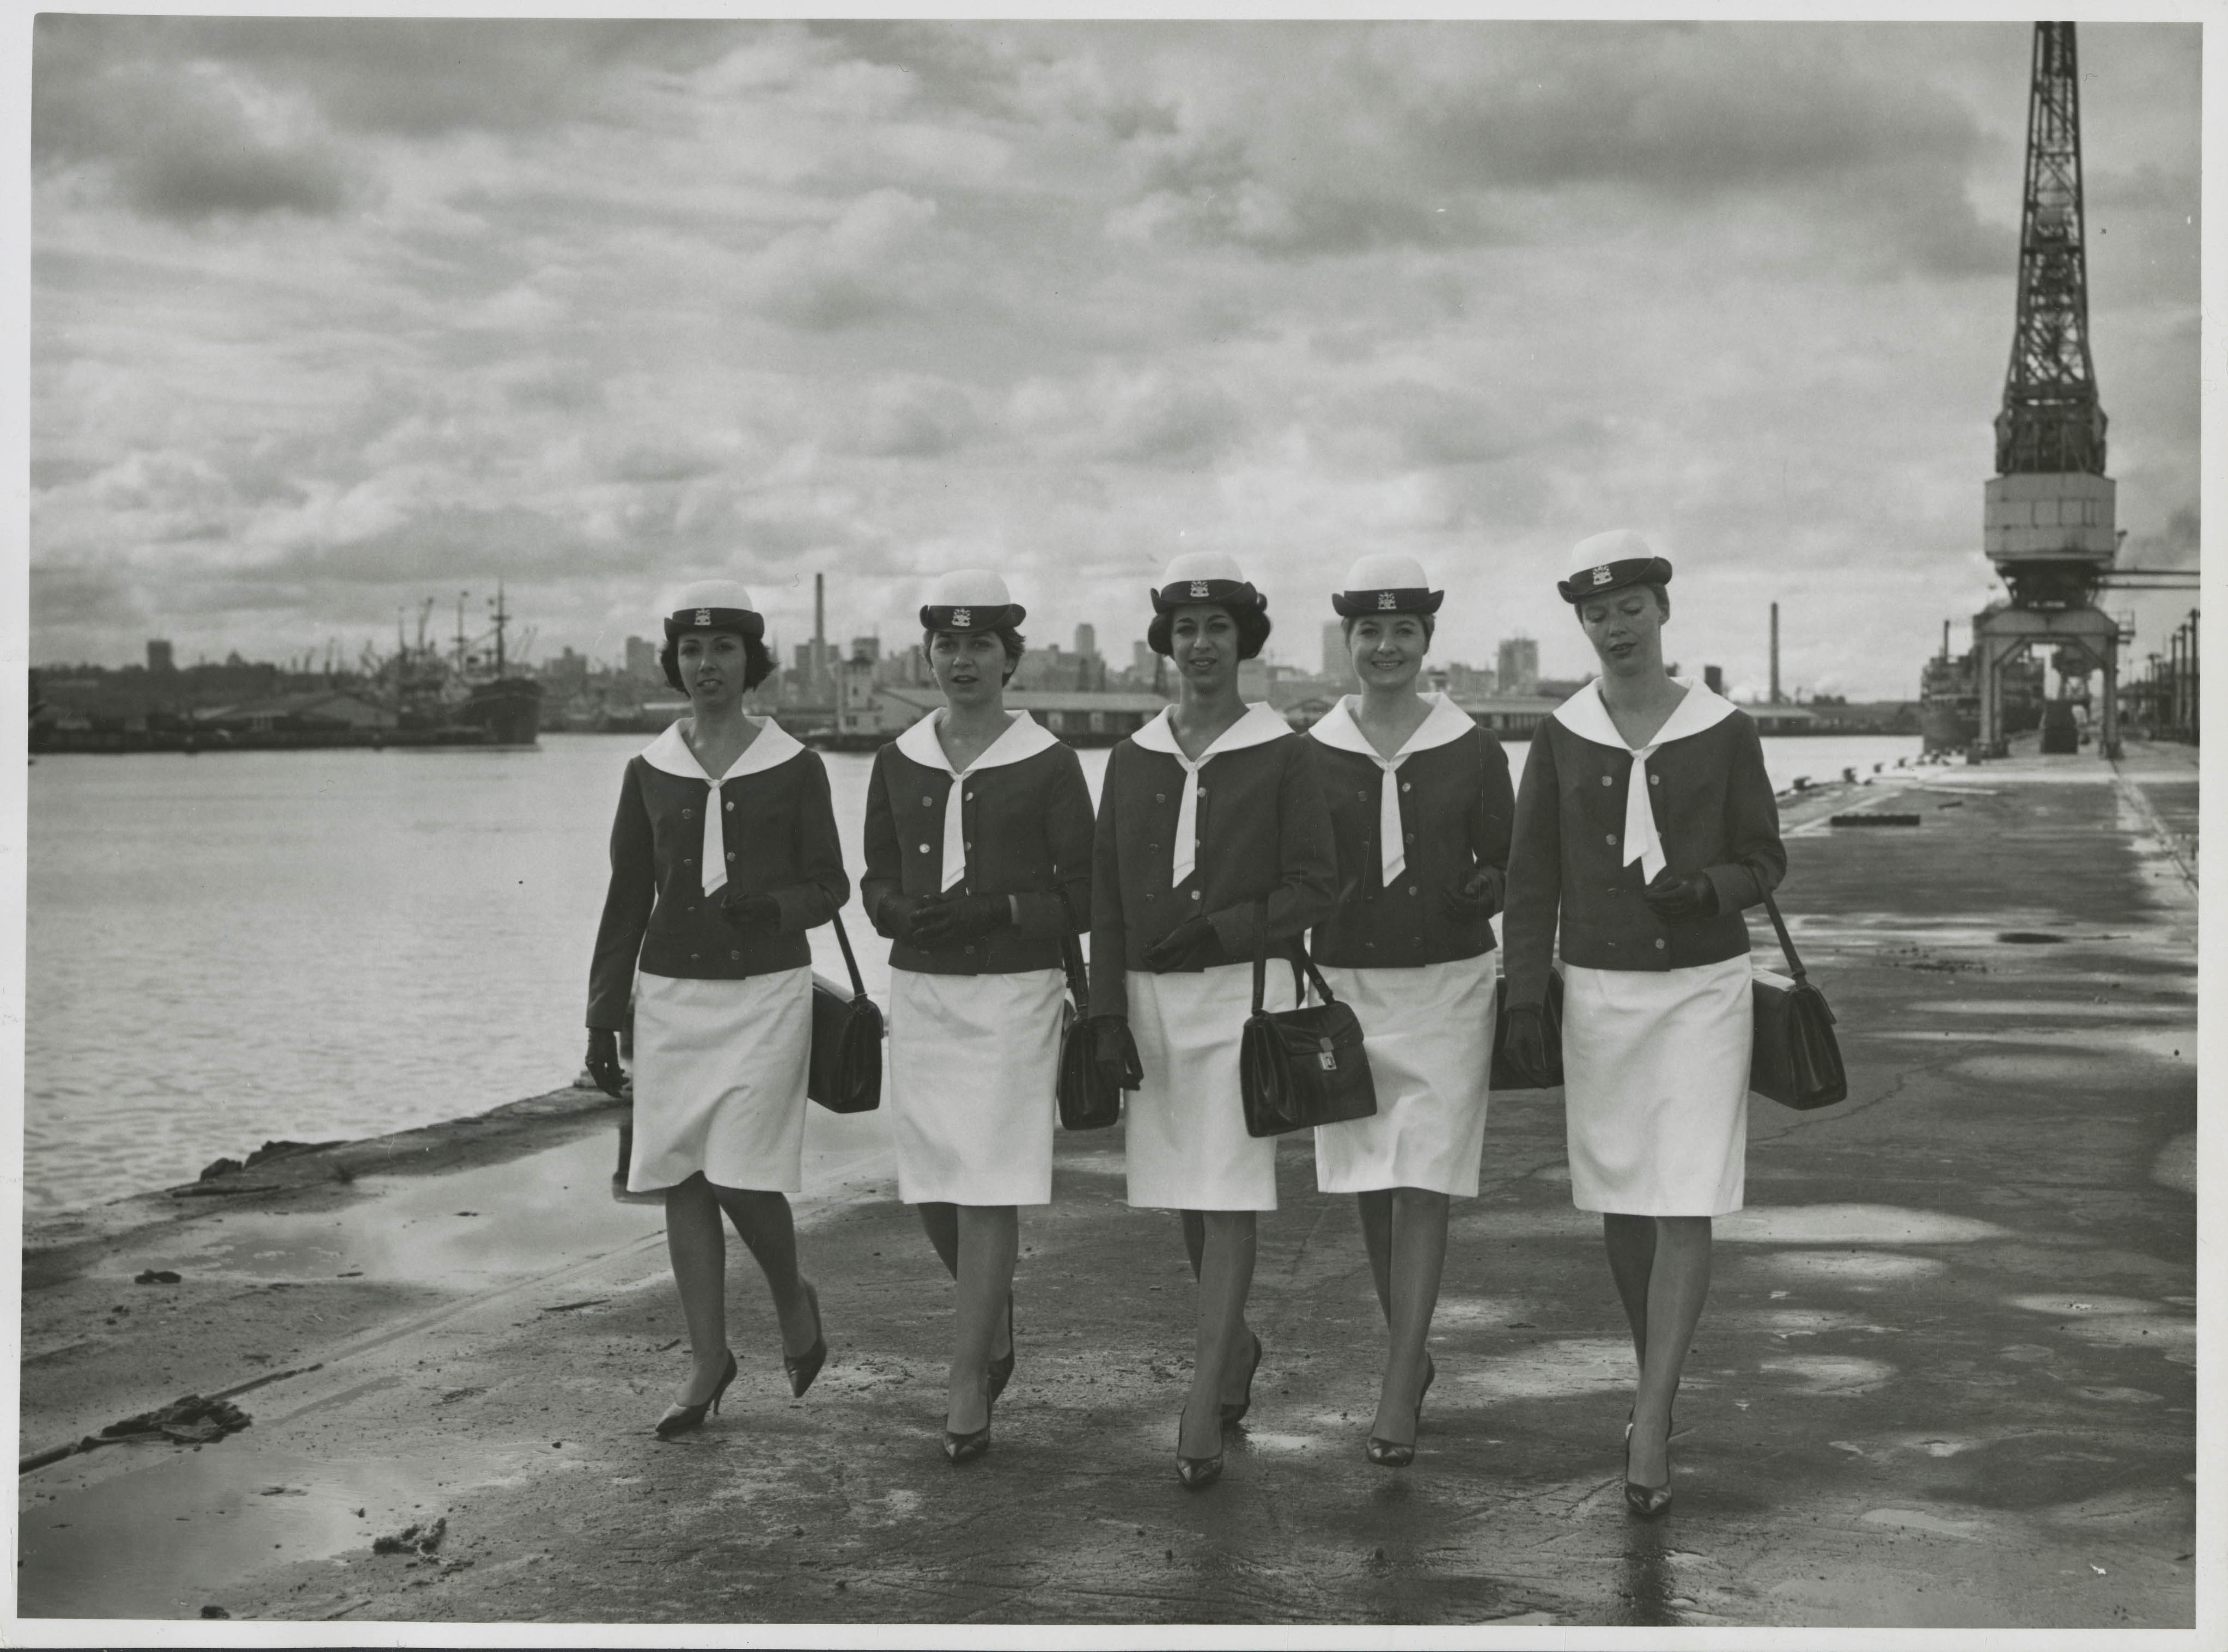 women in uniform walking along the dock